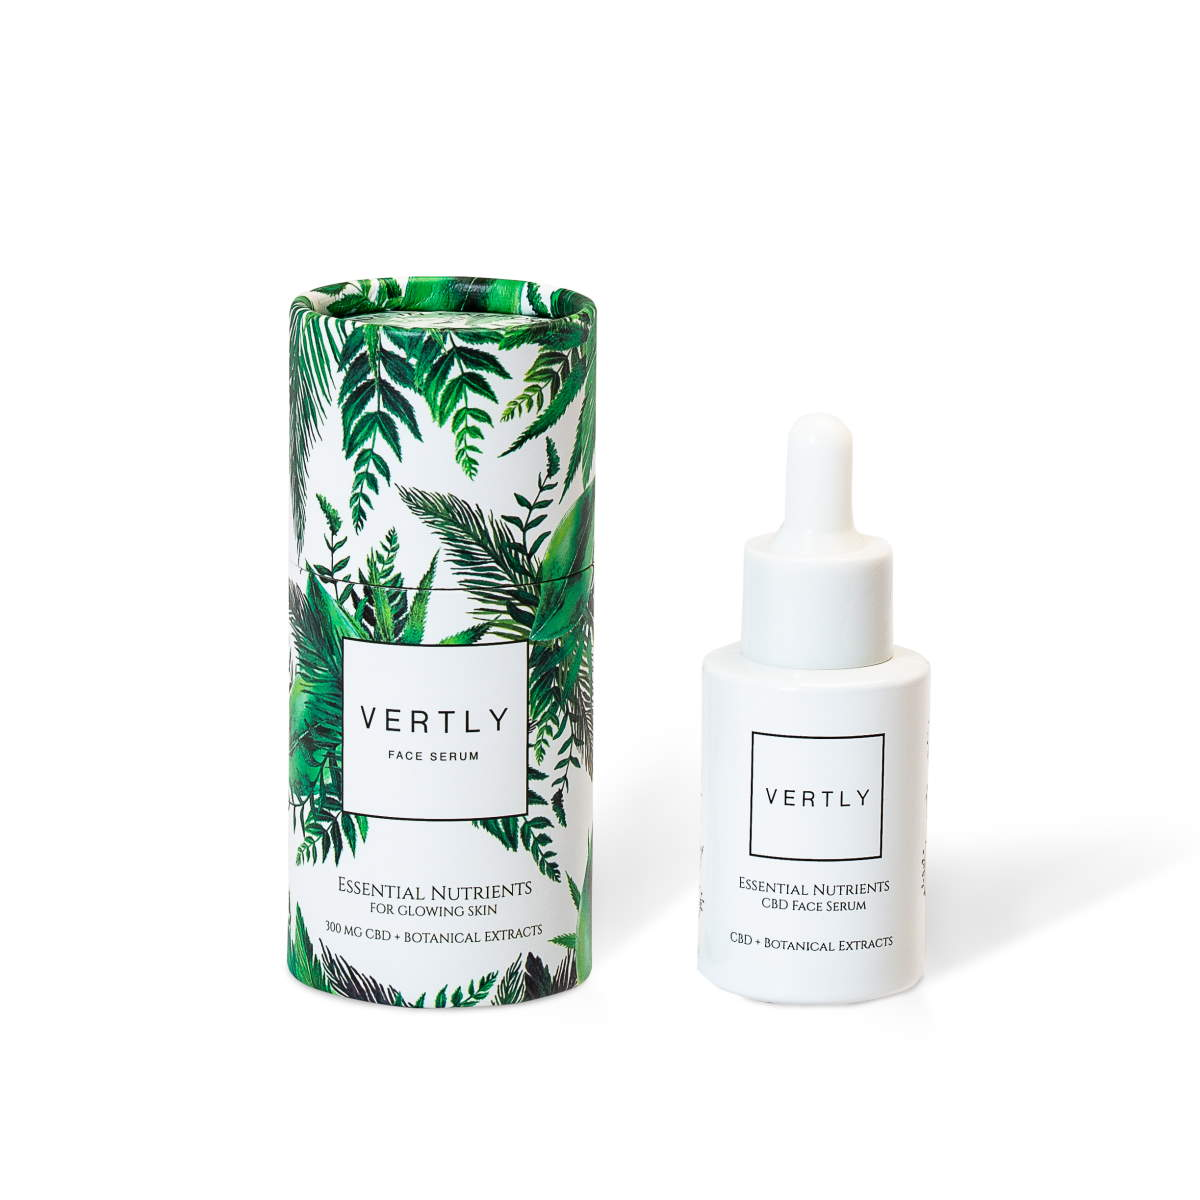 CBD + BOTANICAL EXTRACTS FACE SERUM - Kerwell: Premium CBD House